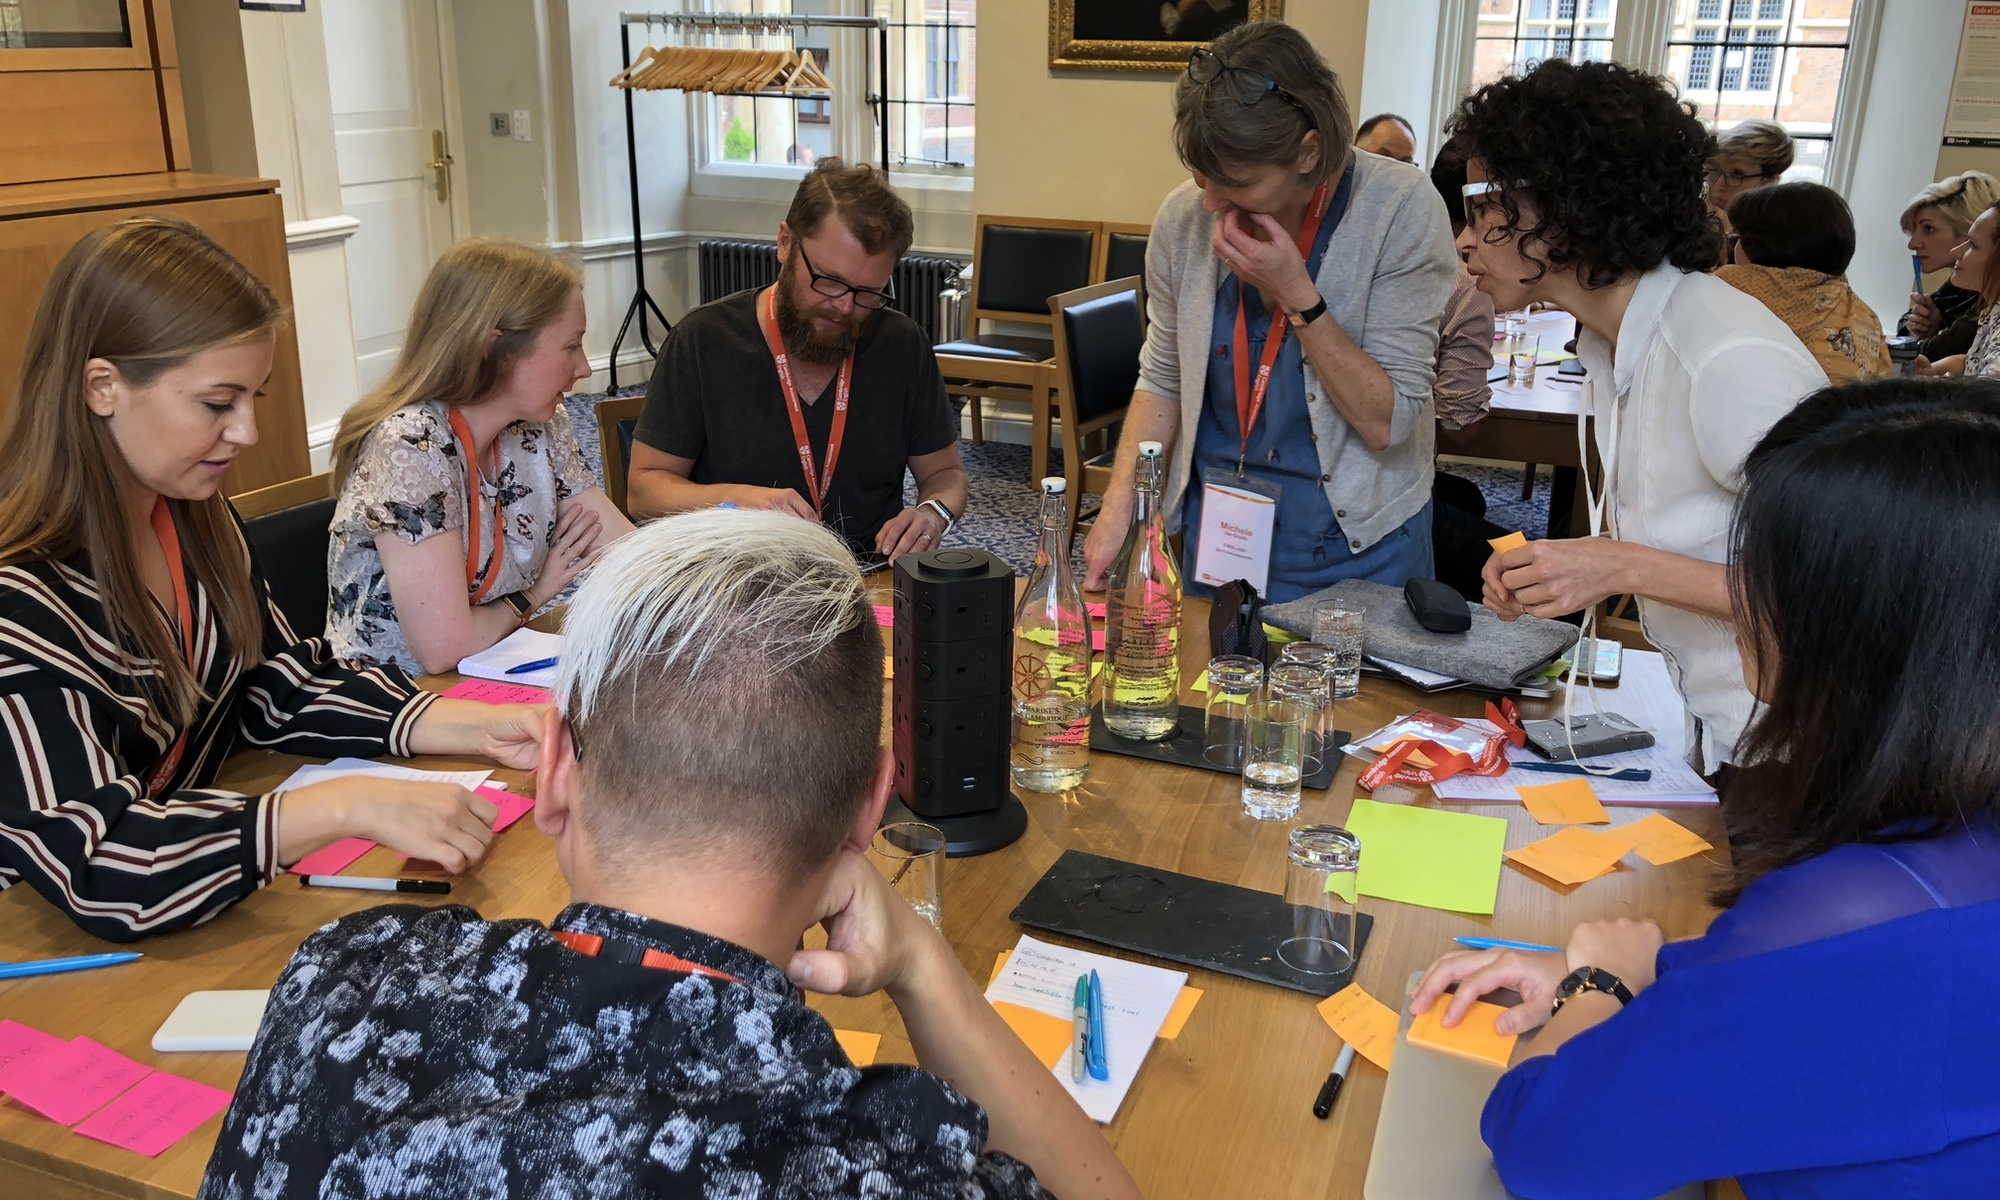 Photo from workshop at UX Cambridge.